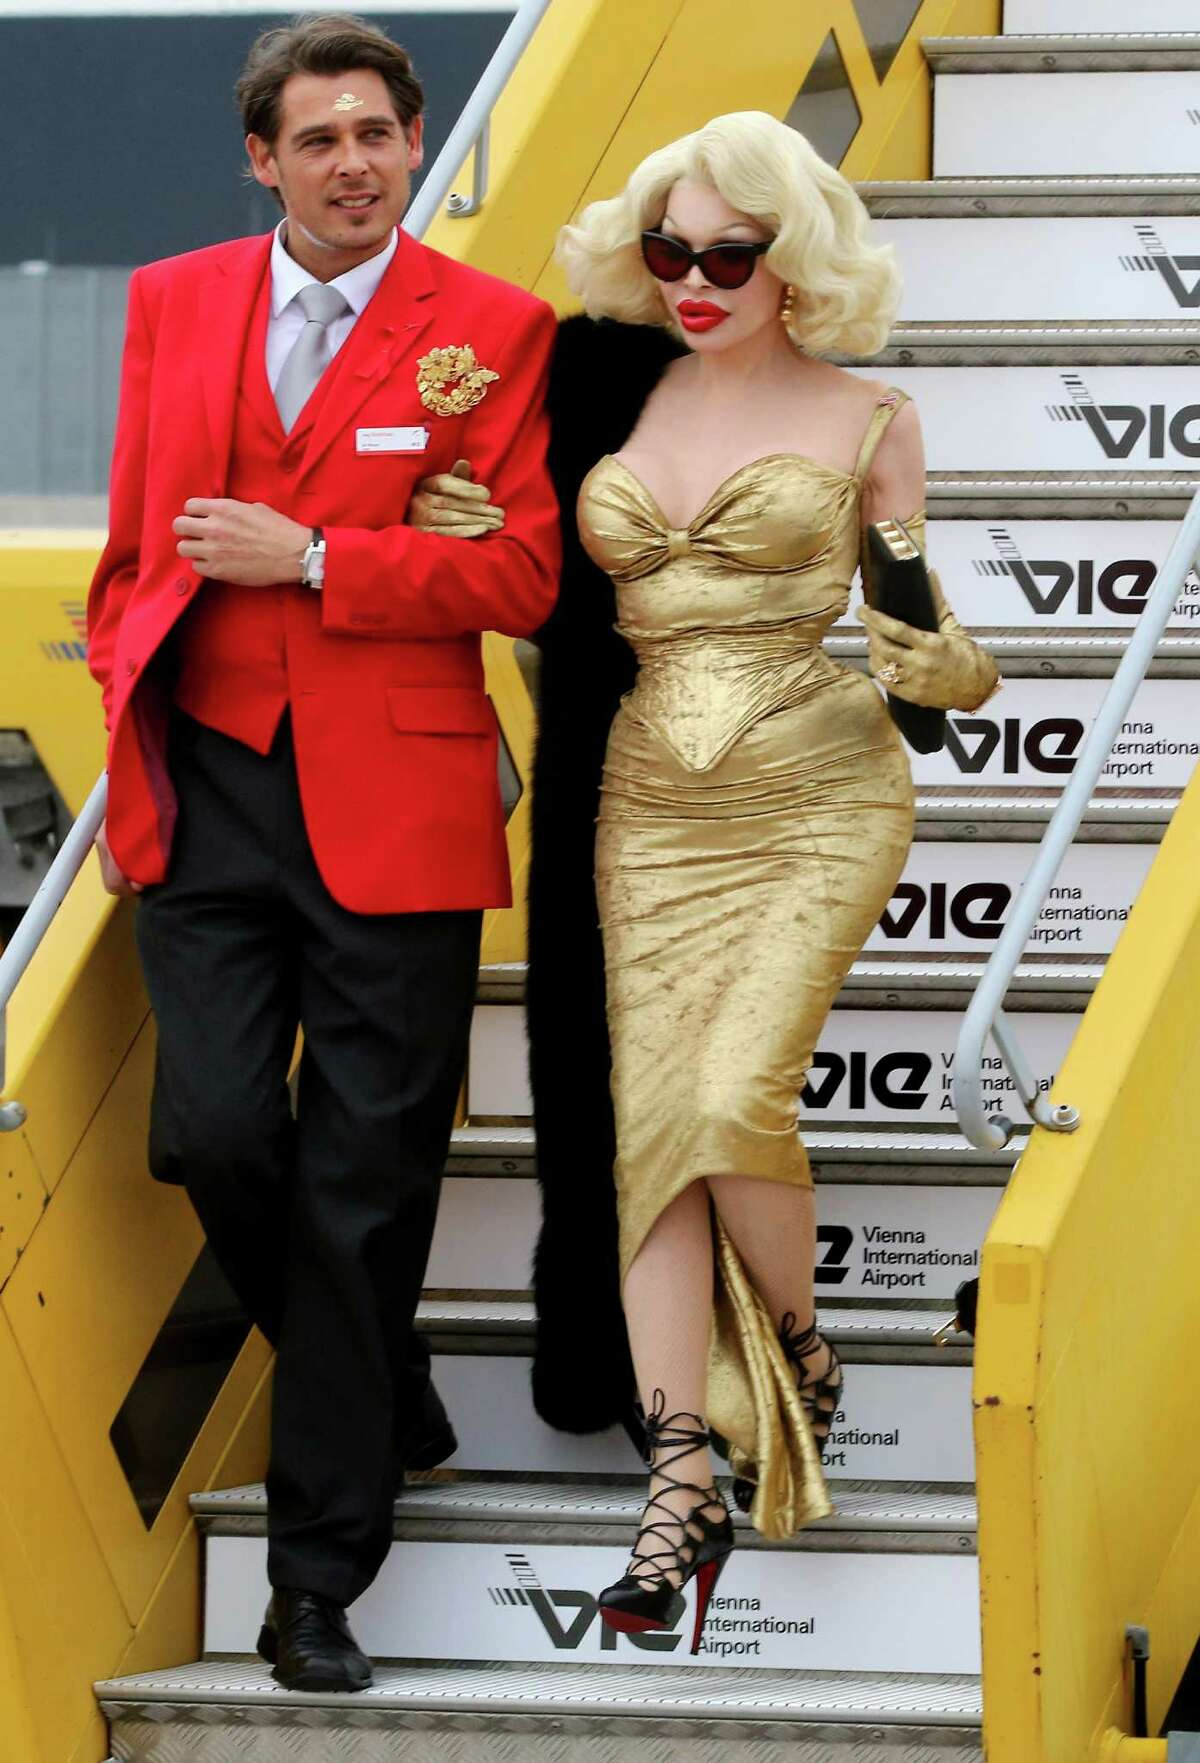 US transgender star Amanda Lepore, right, arrives for the largest annual AIDS charity gala in Europe known as the Life Ball, at the Vienna International airport near Schwechat, Austria, Friday, May 15, 2015.